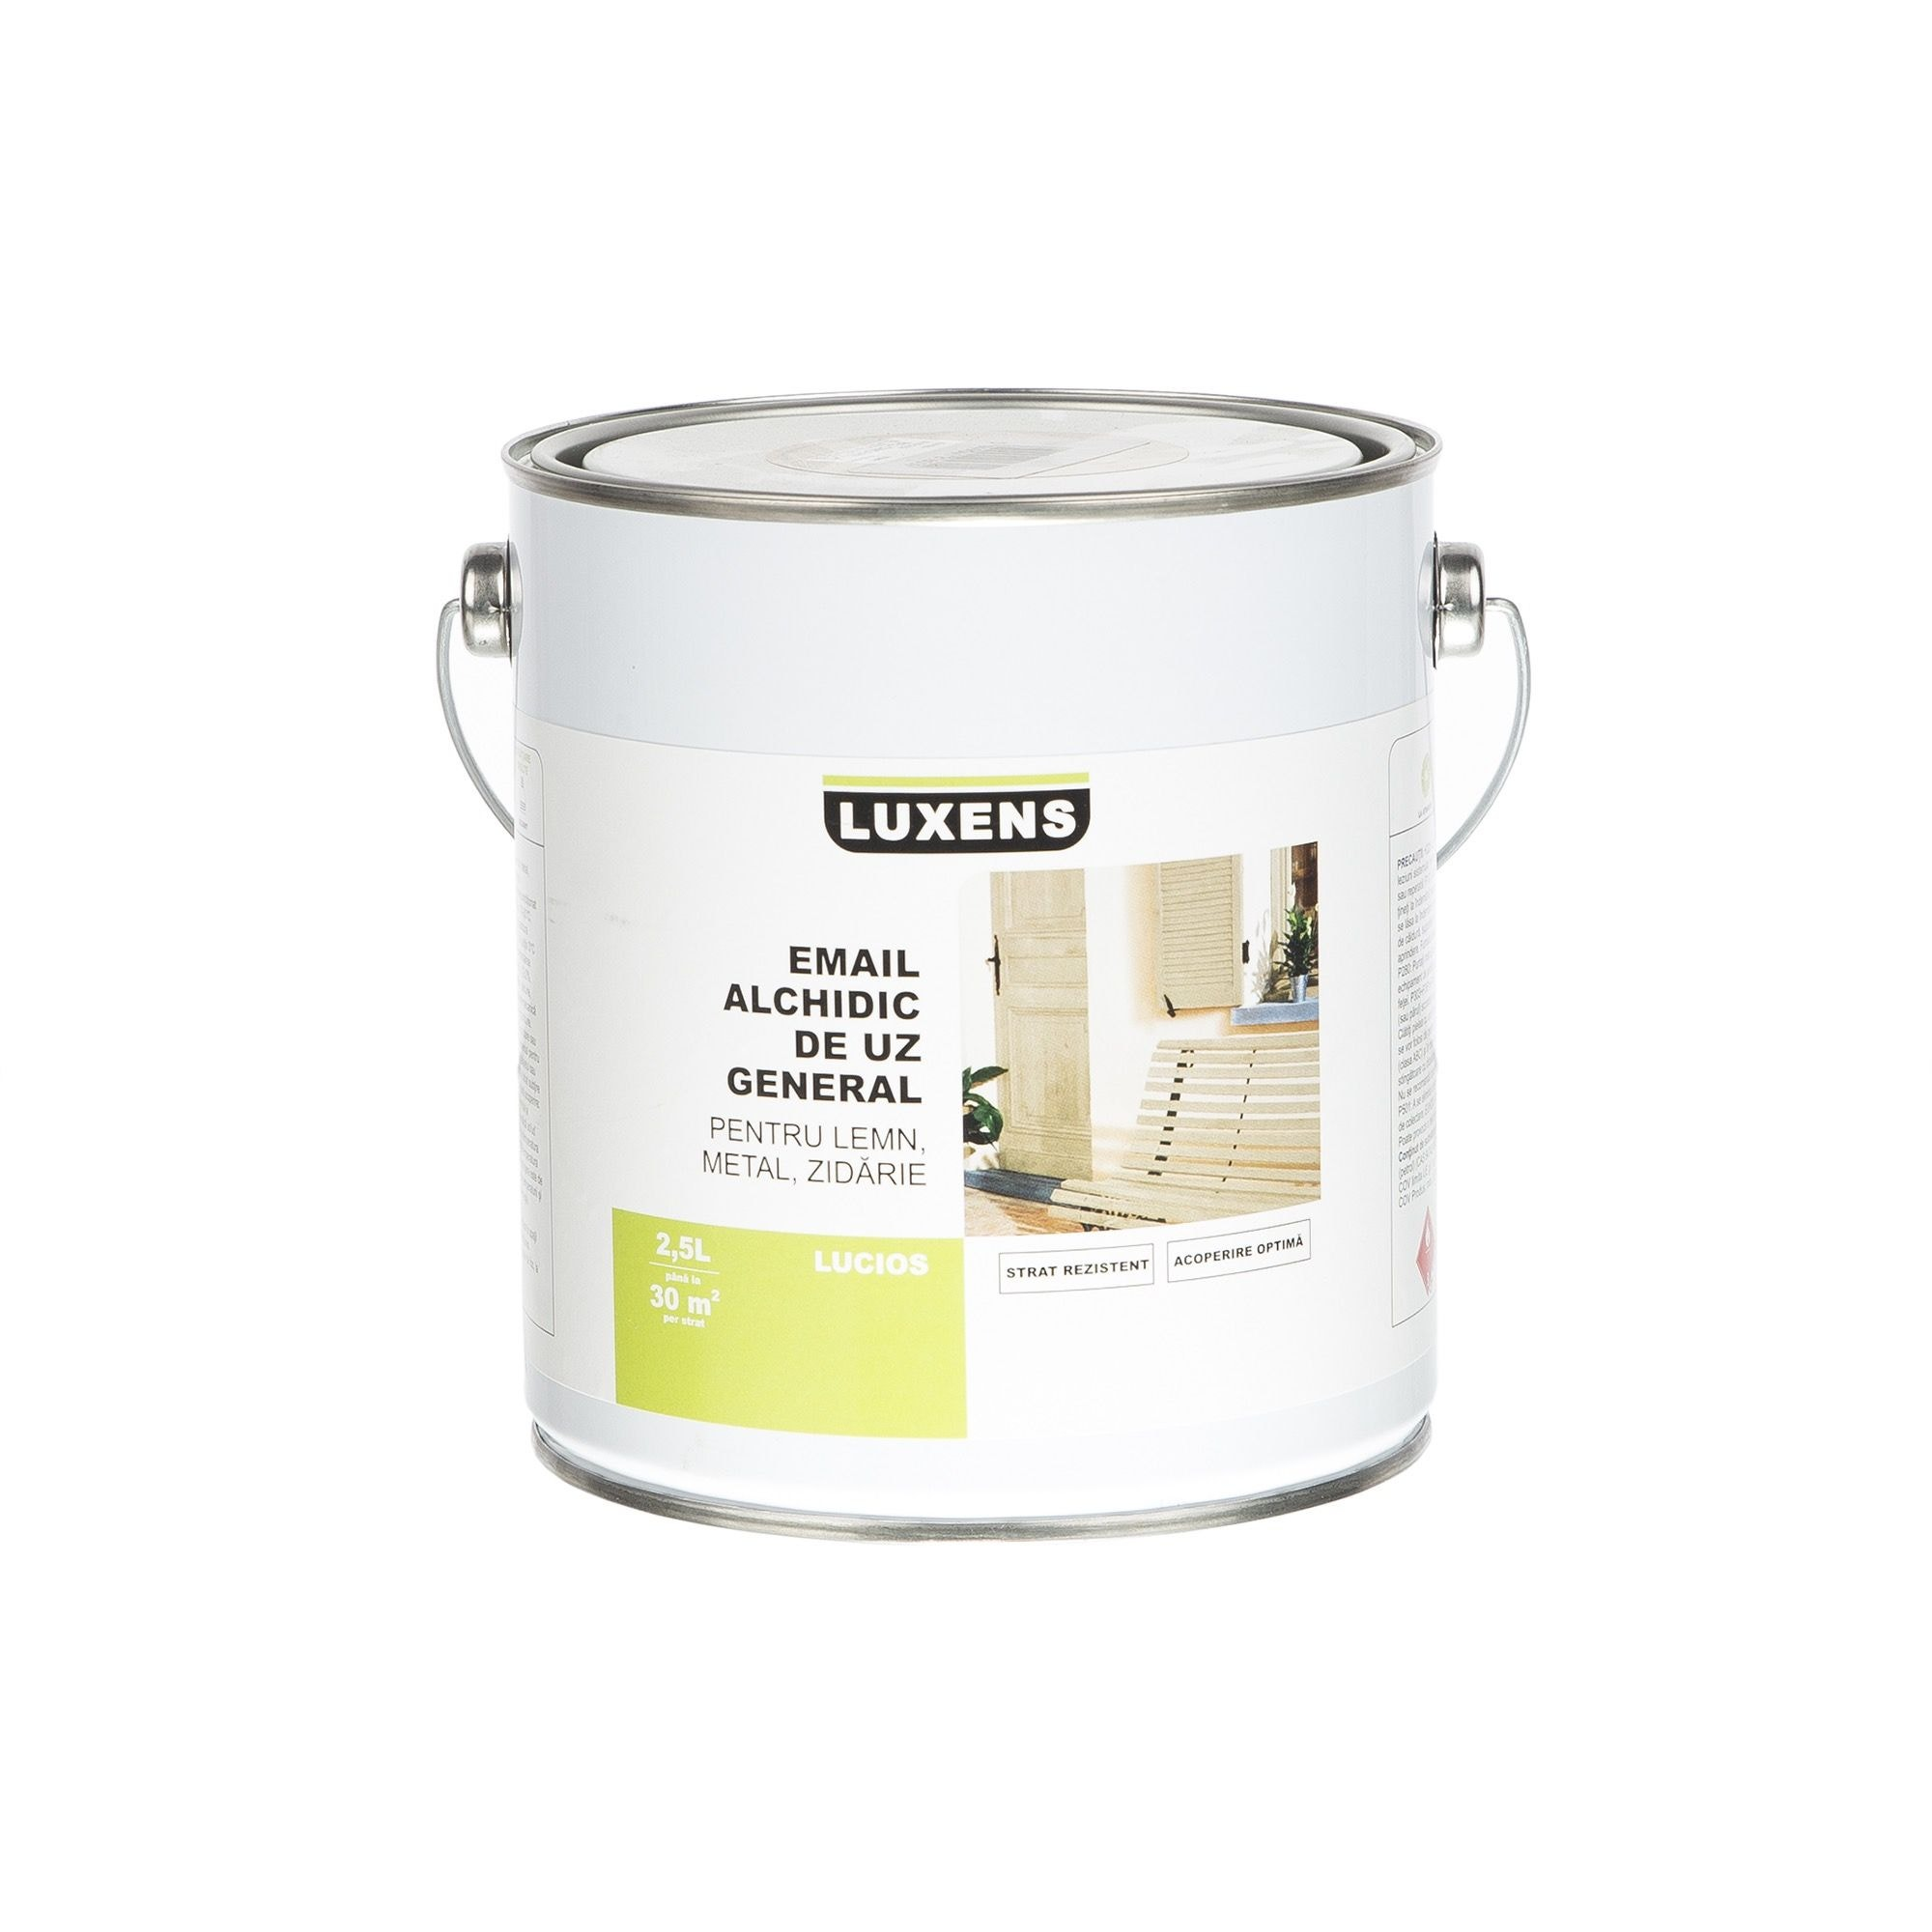 Email solvent Luxens light ivory 2.5 l